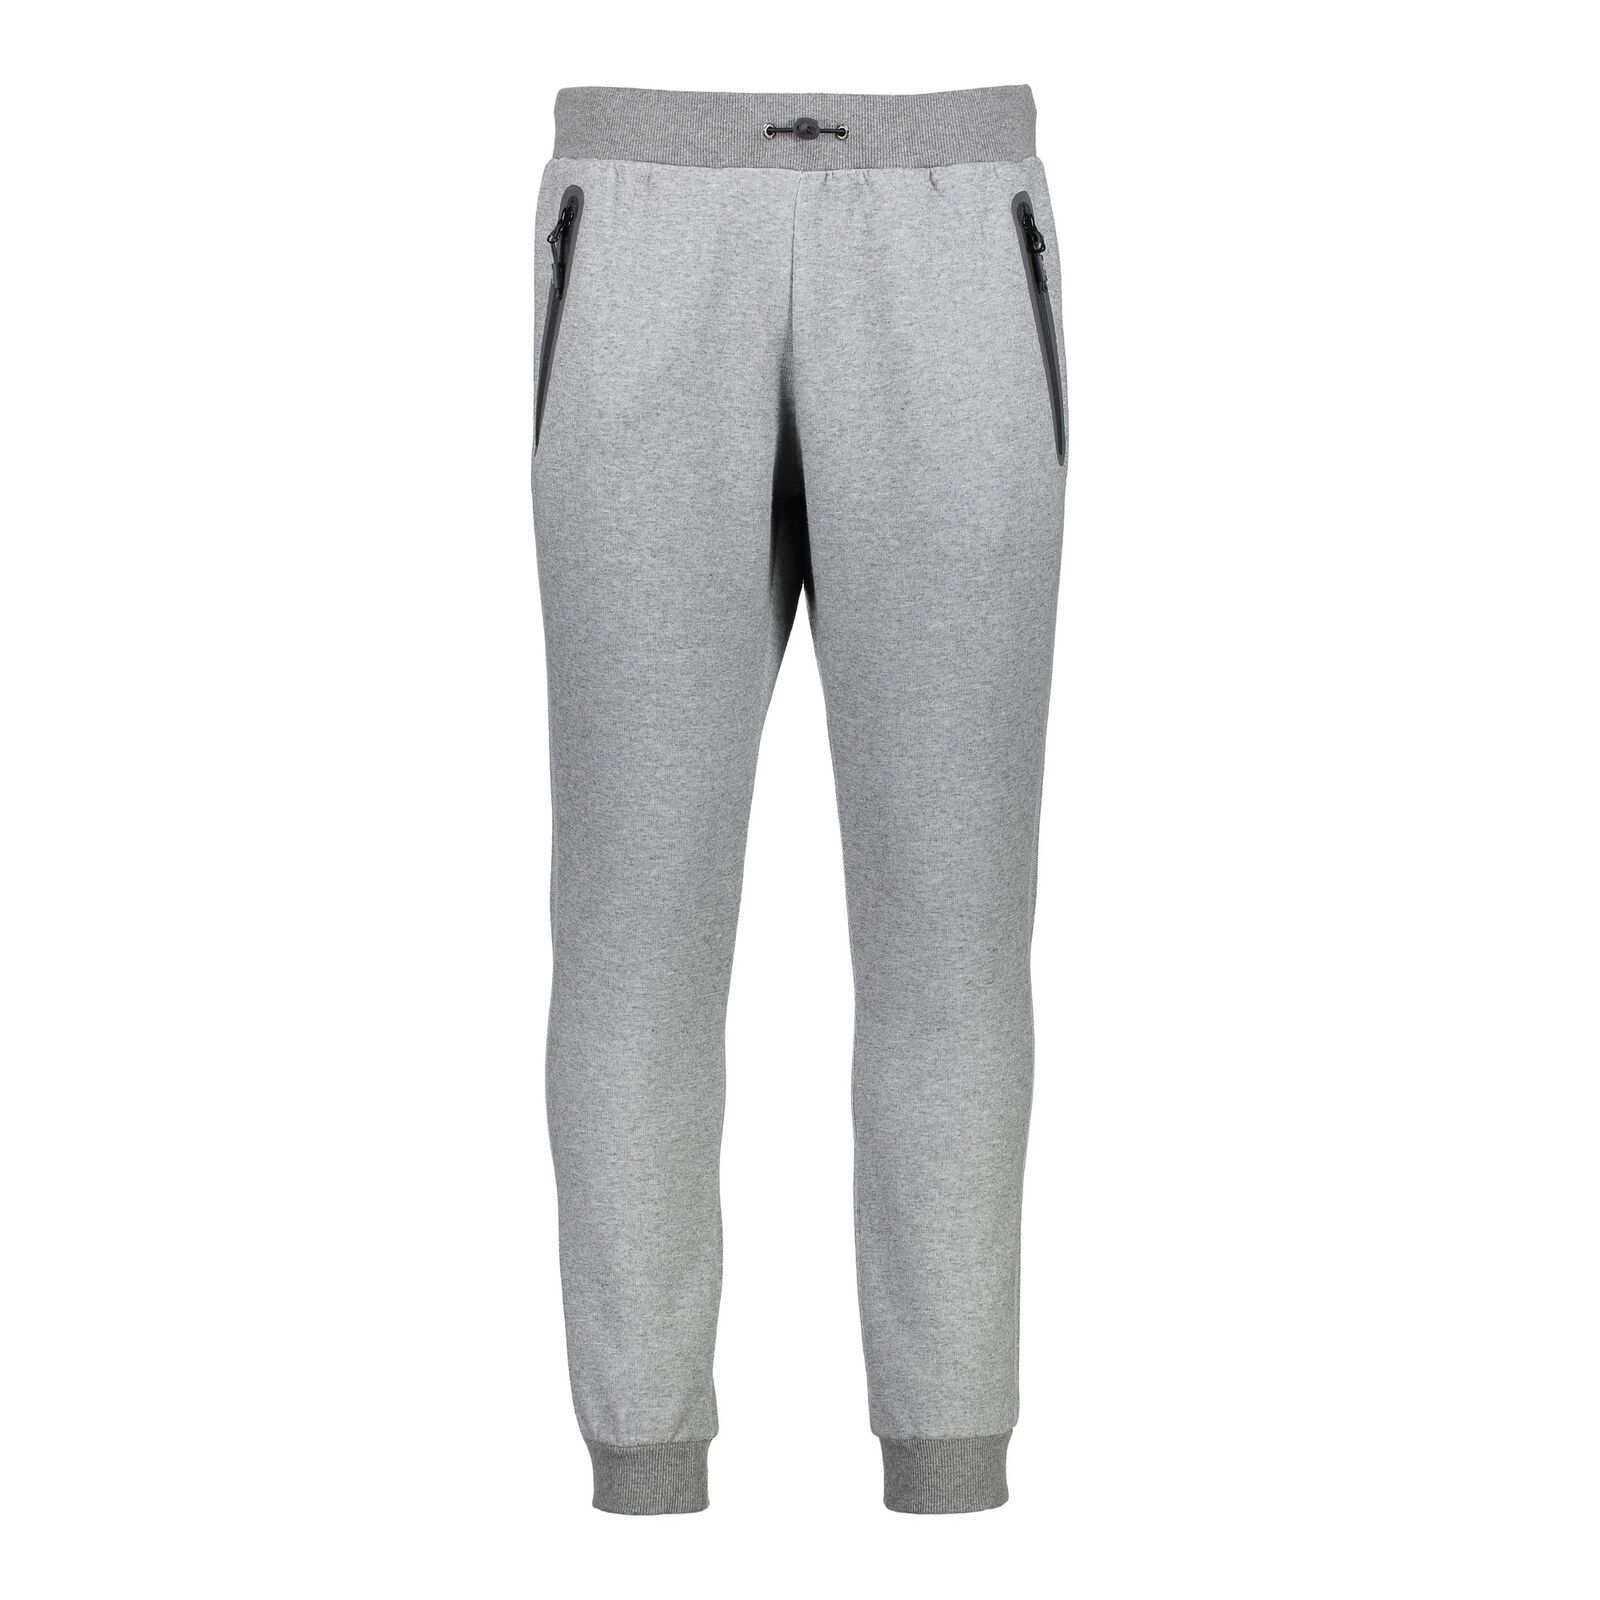 CMP Sweat Pants Trousers One Long Pant Grey  Breathable Warming Mottled  get the latest